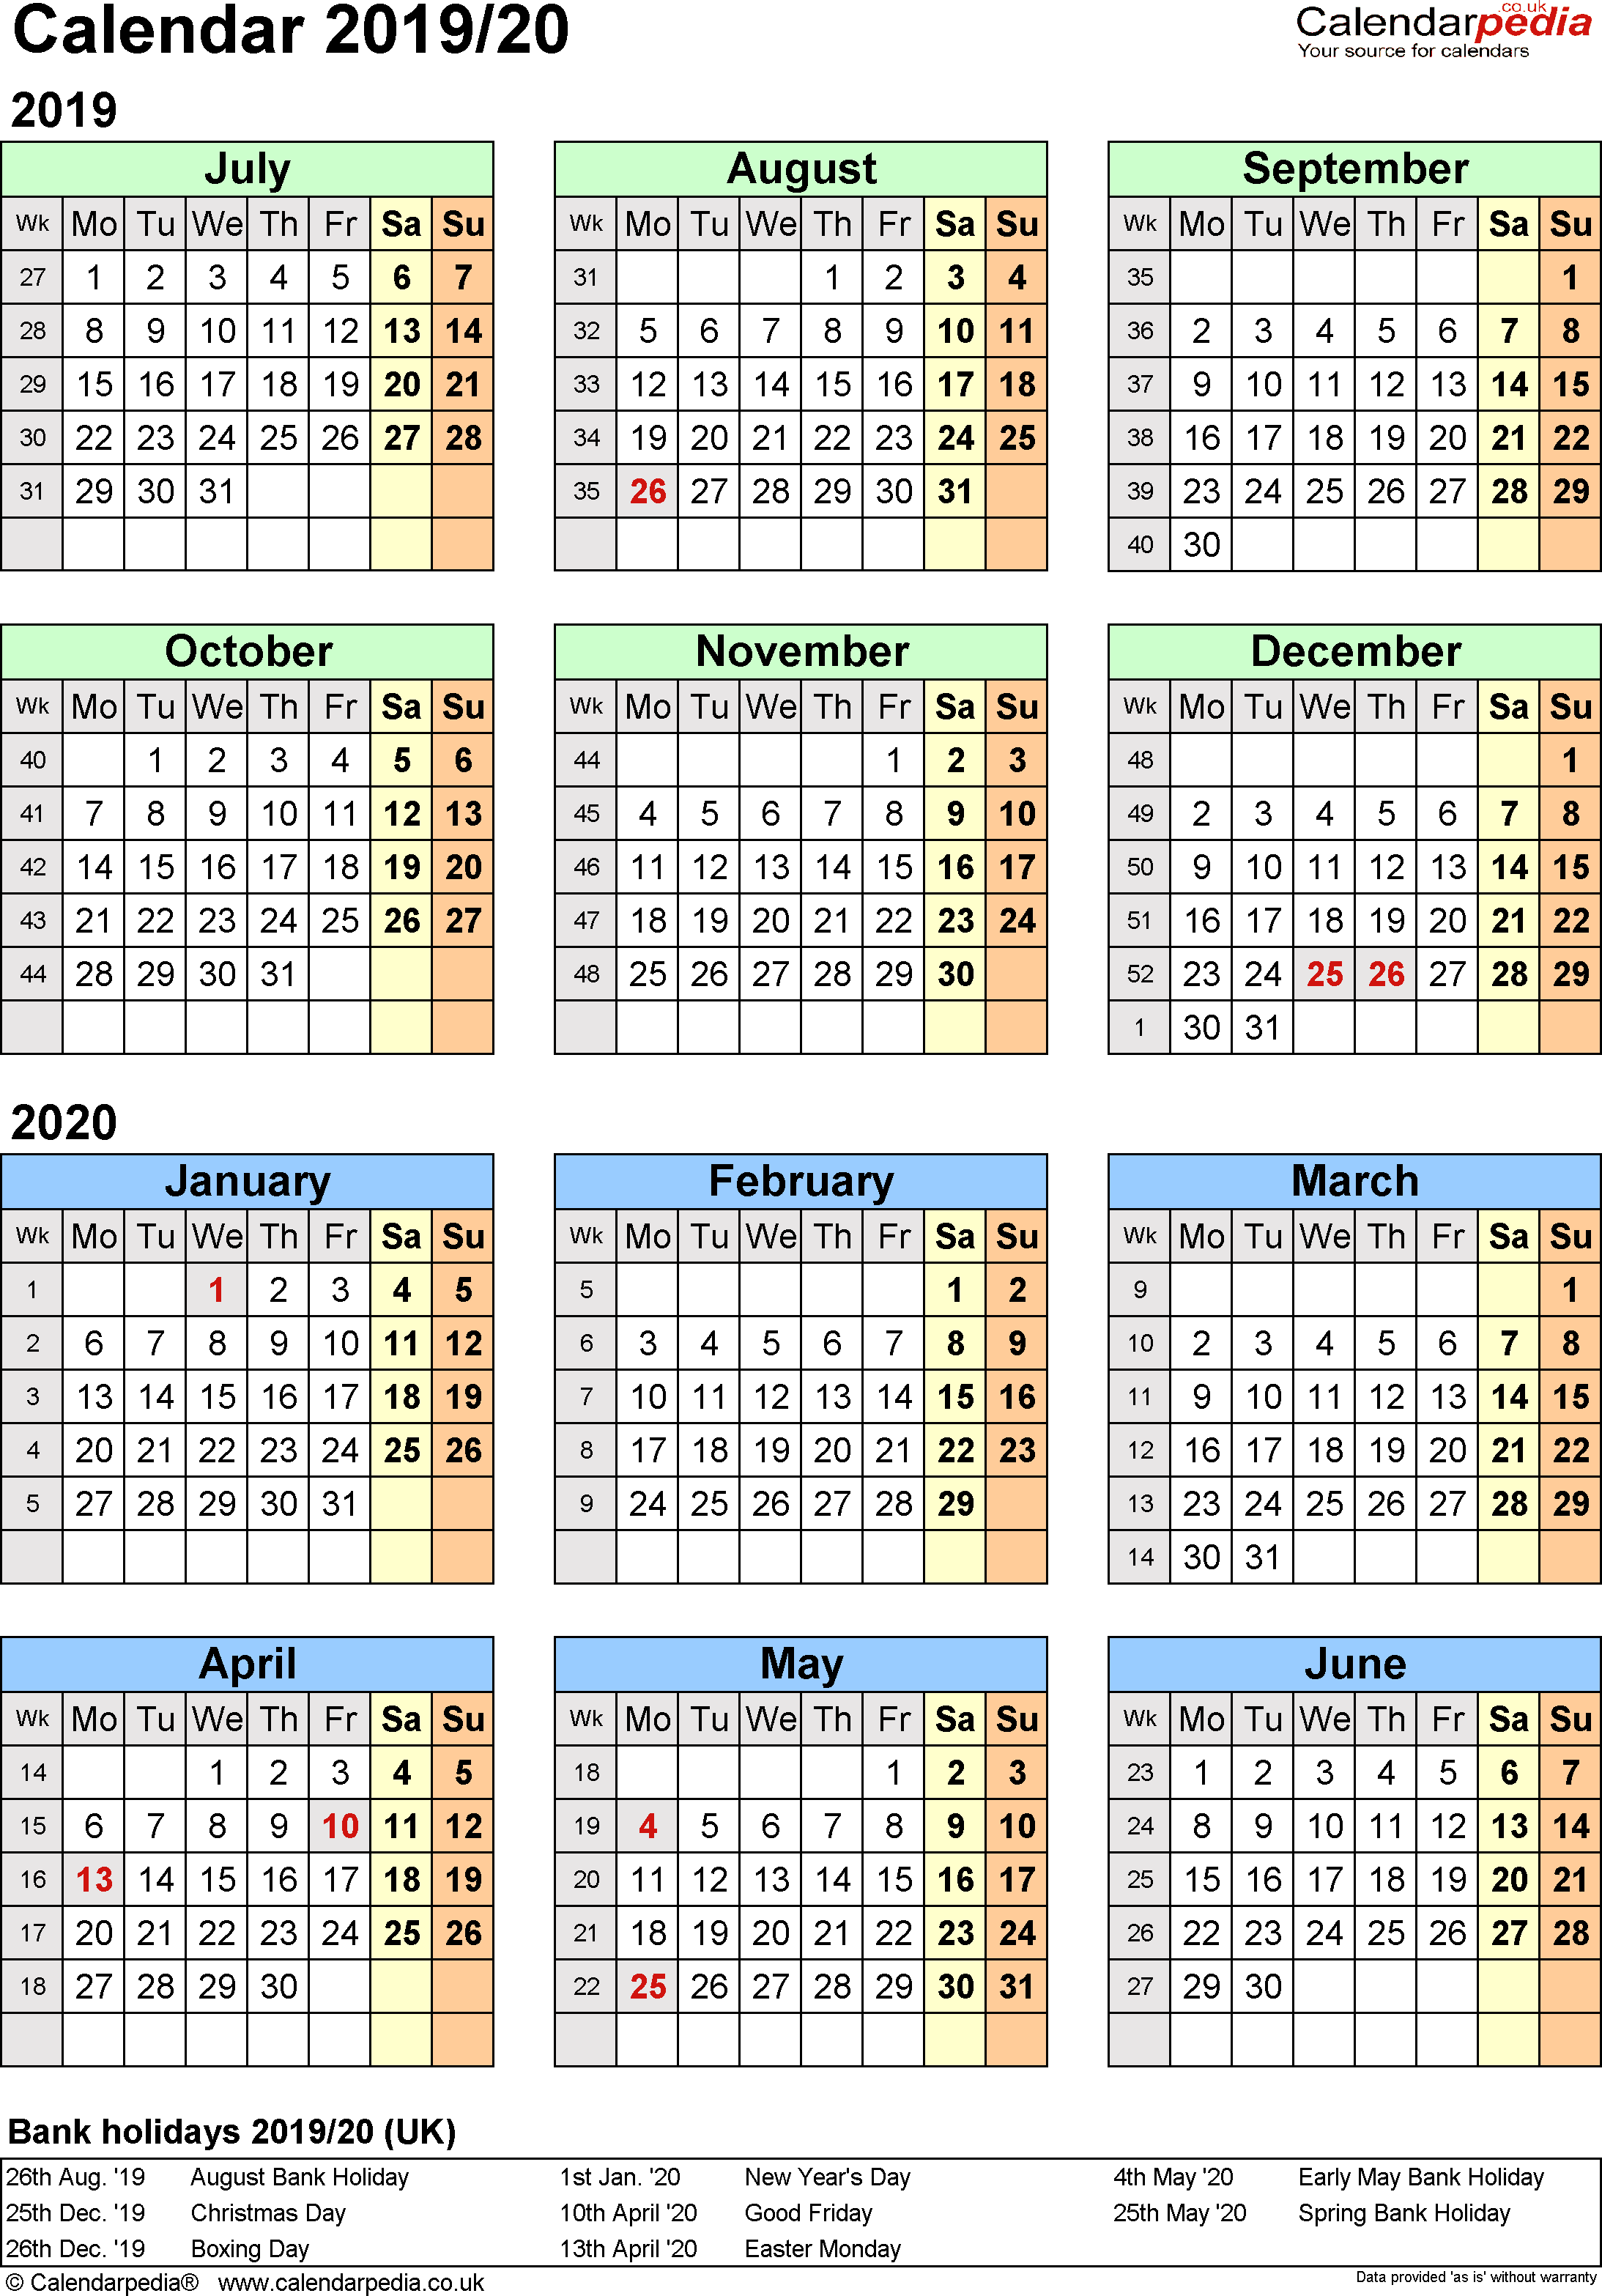 template 2 excel template for split year calendar 20192020 portrait orientation